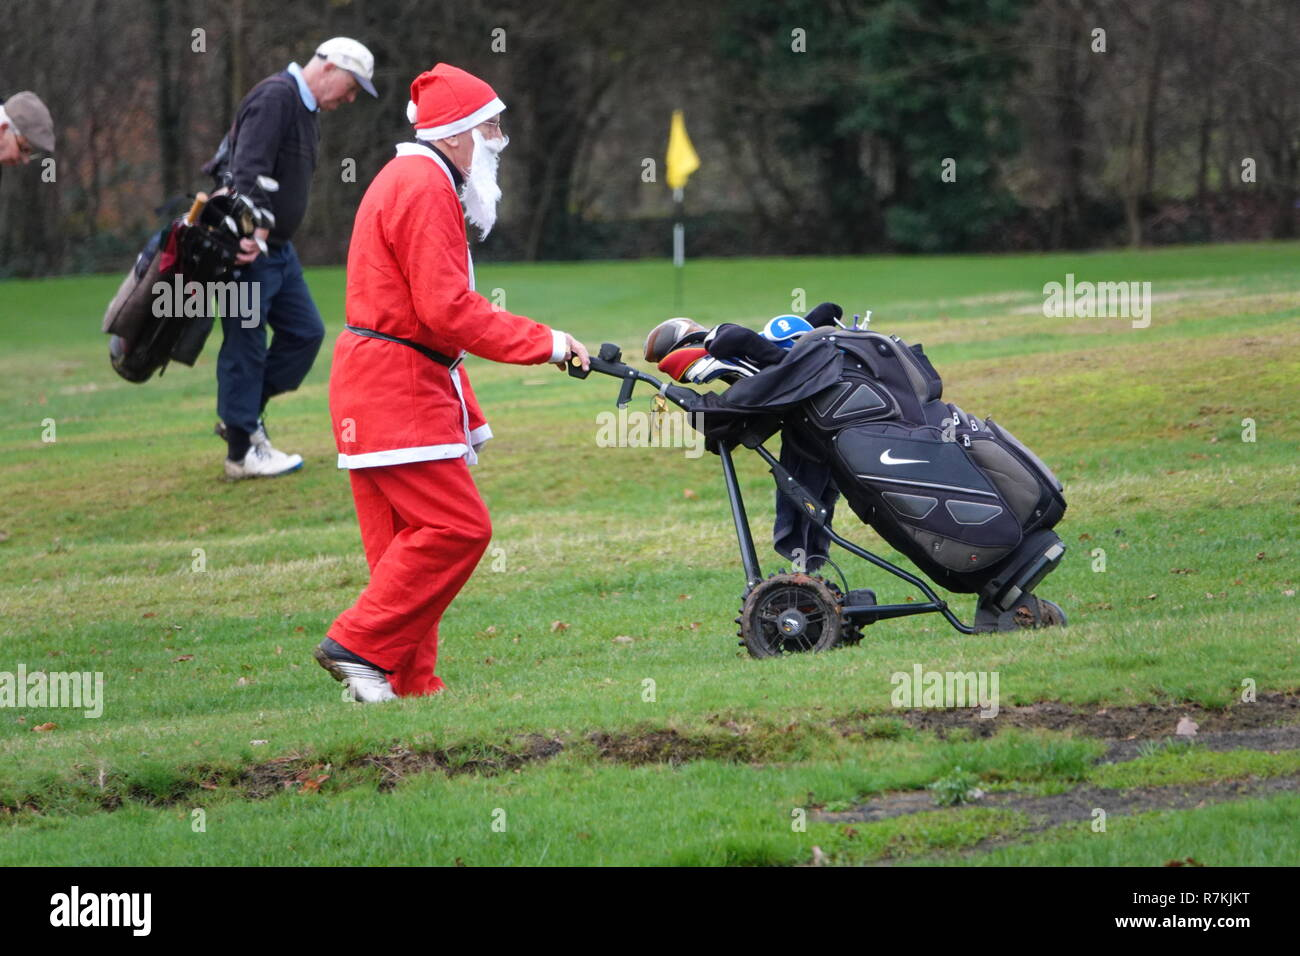 Funny Golf Clubs High Resolution Stock Photography and Images - Alamy